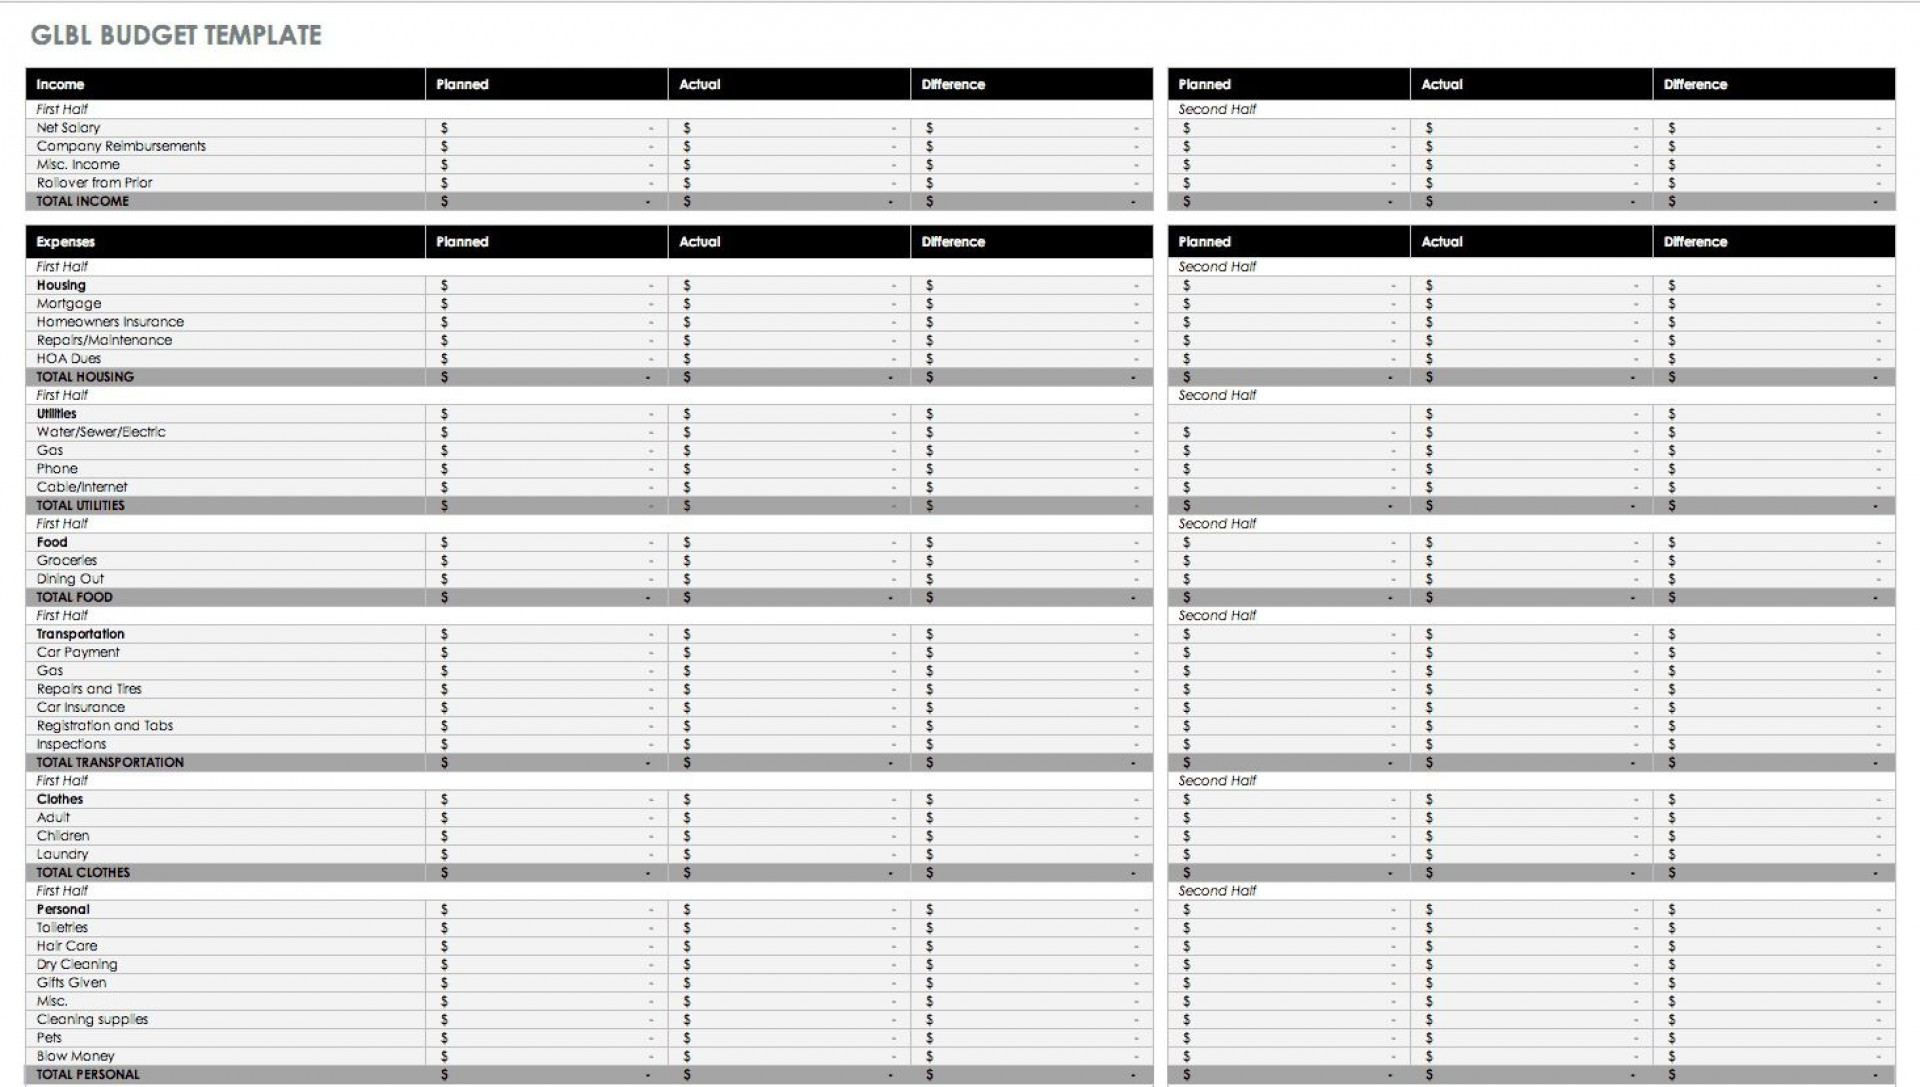 004 Dreaded Free Personal Budget Template High Definition  Word Printable Uk Spreadsheet1920